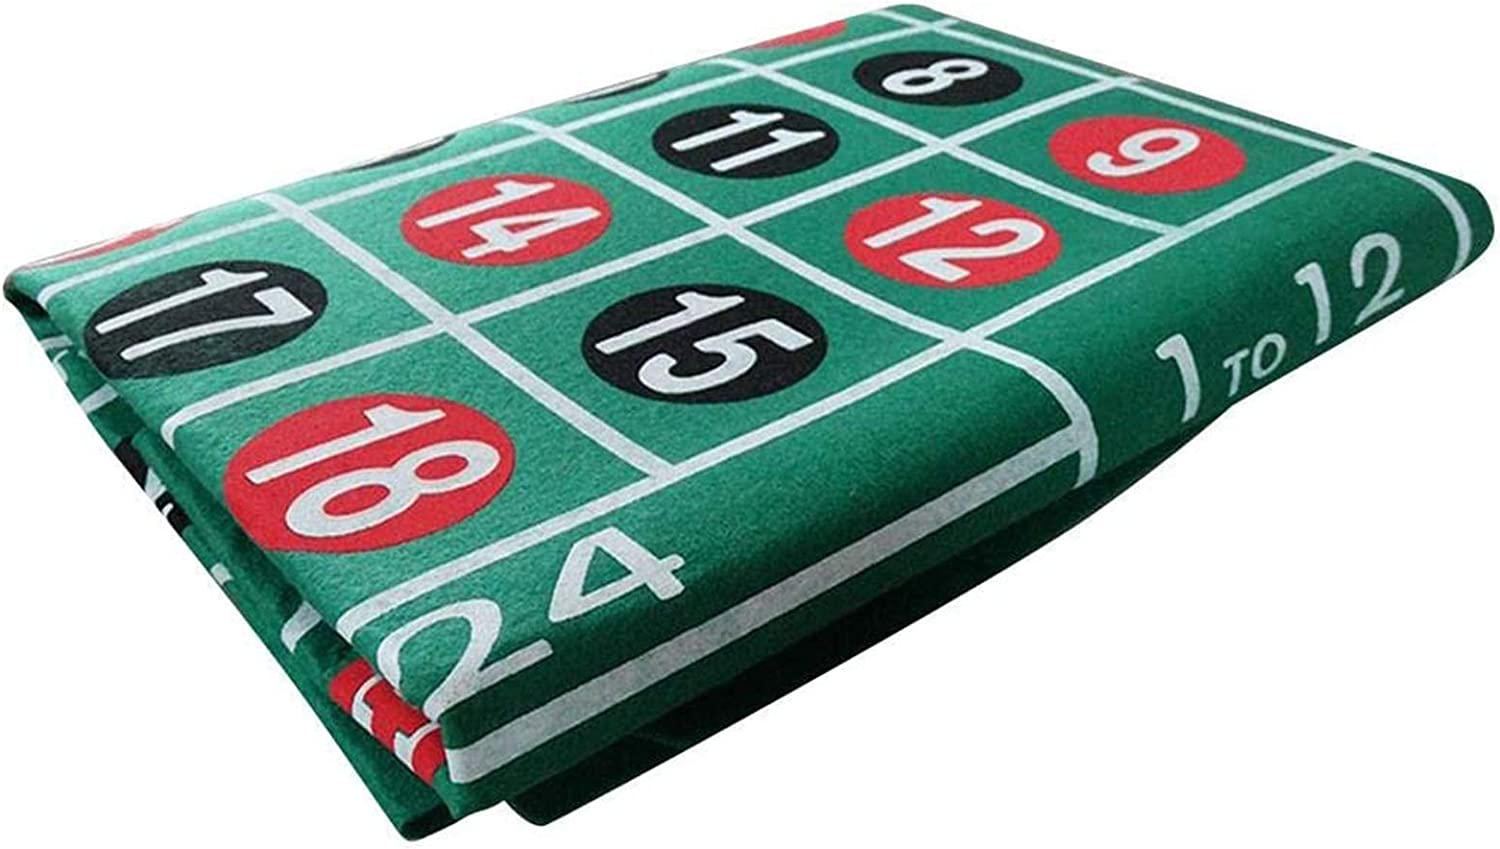 ZSViVi Boston Mall Poker Table Cloth,Double-Sided Pattern Tableclo 100% quality warranty Game